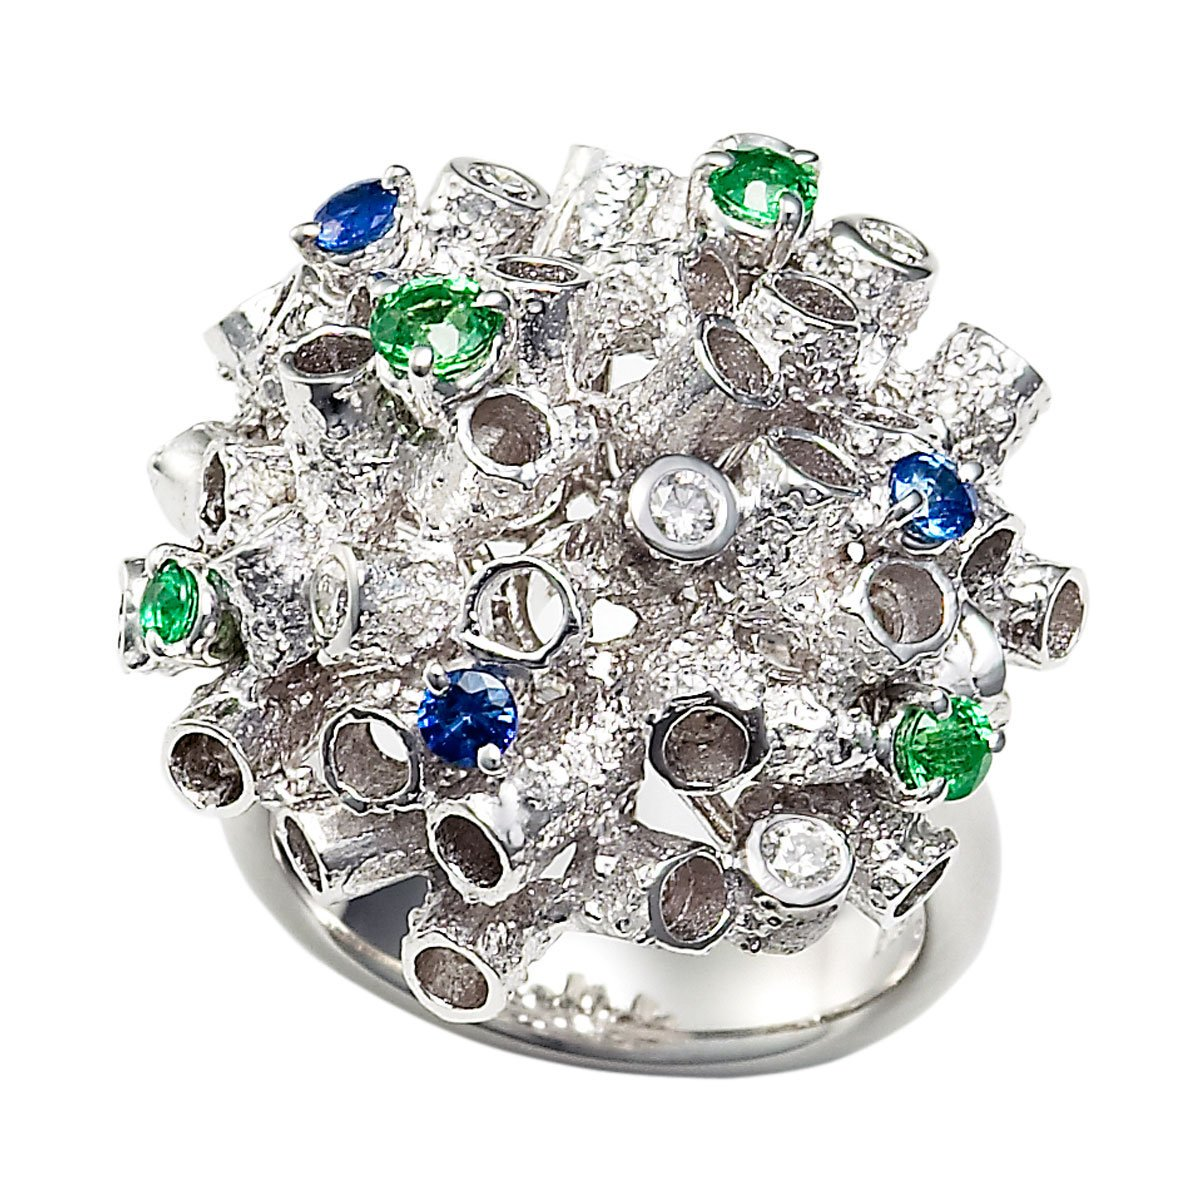 Archive Collection sapphire, tsavorite & diamond ring